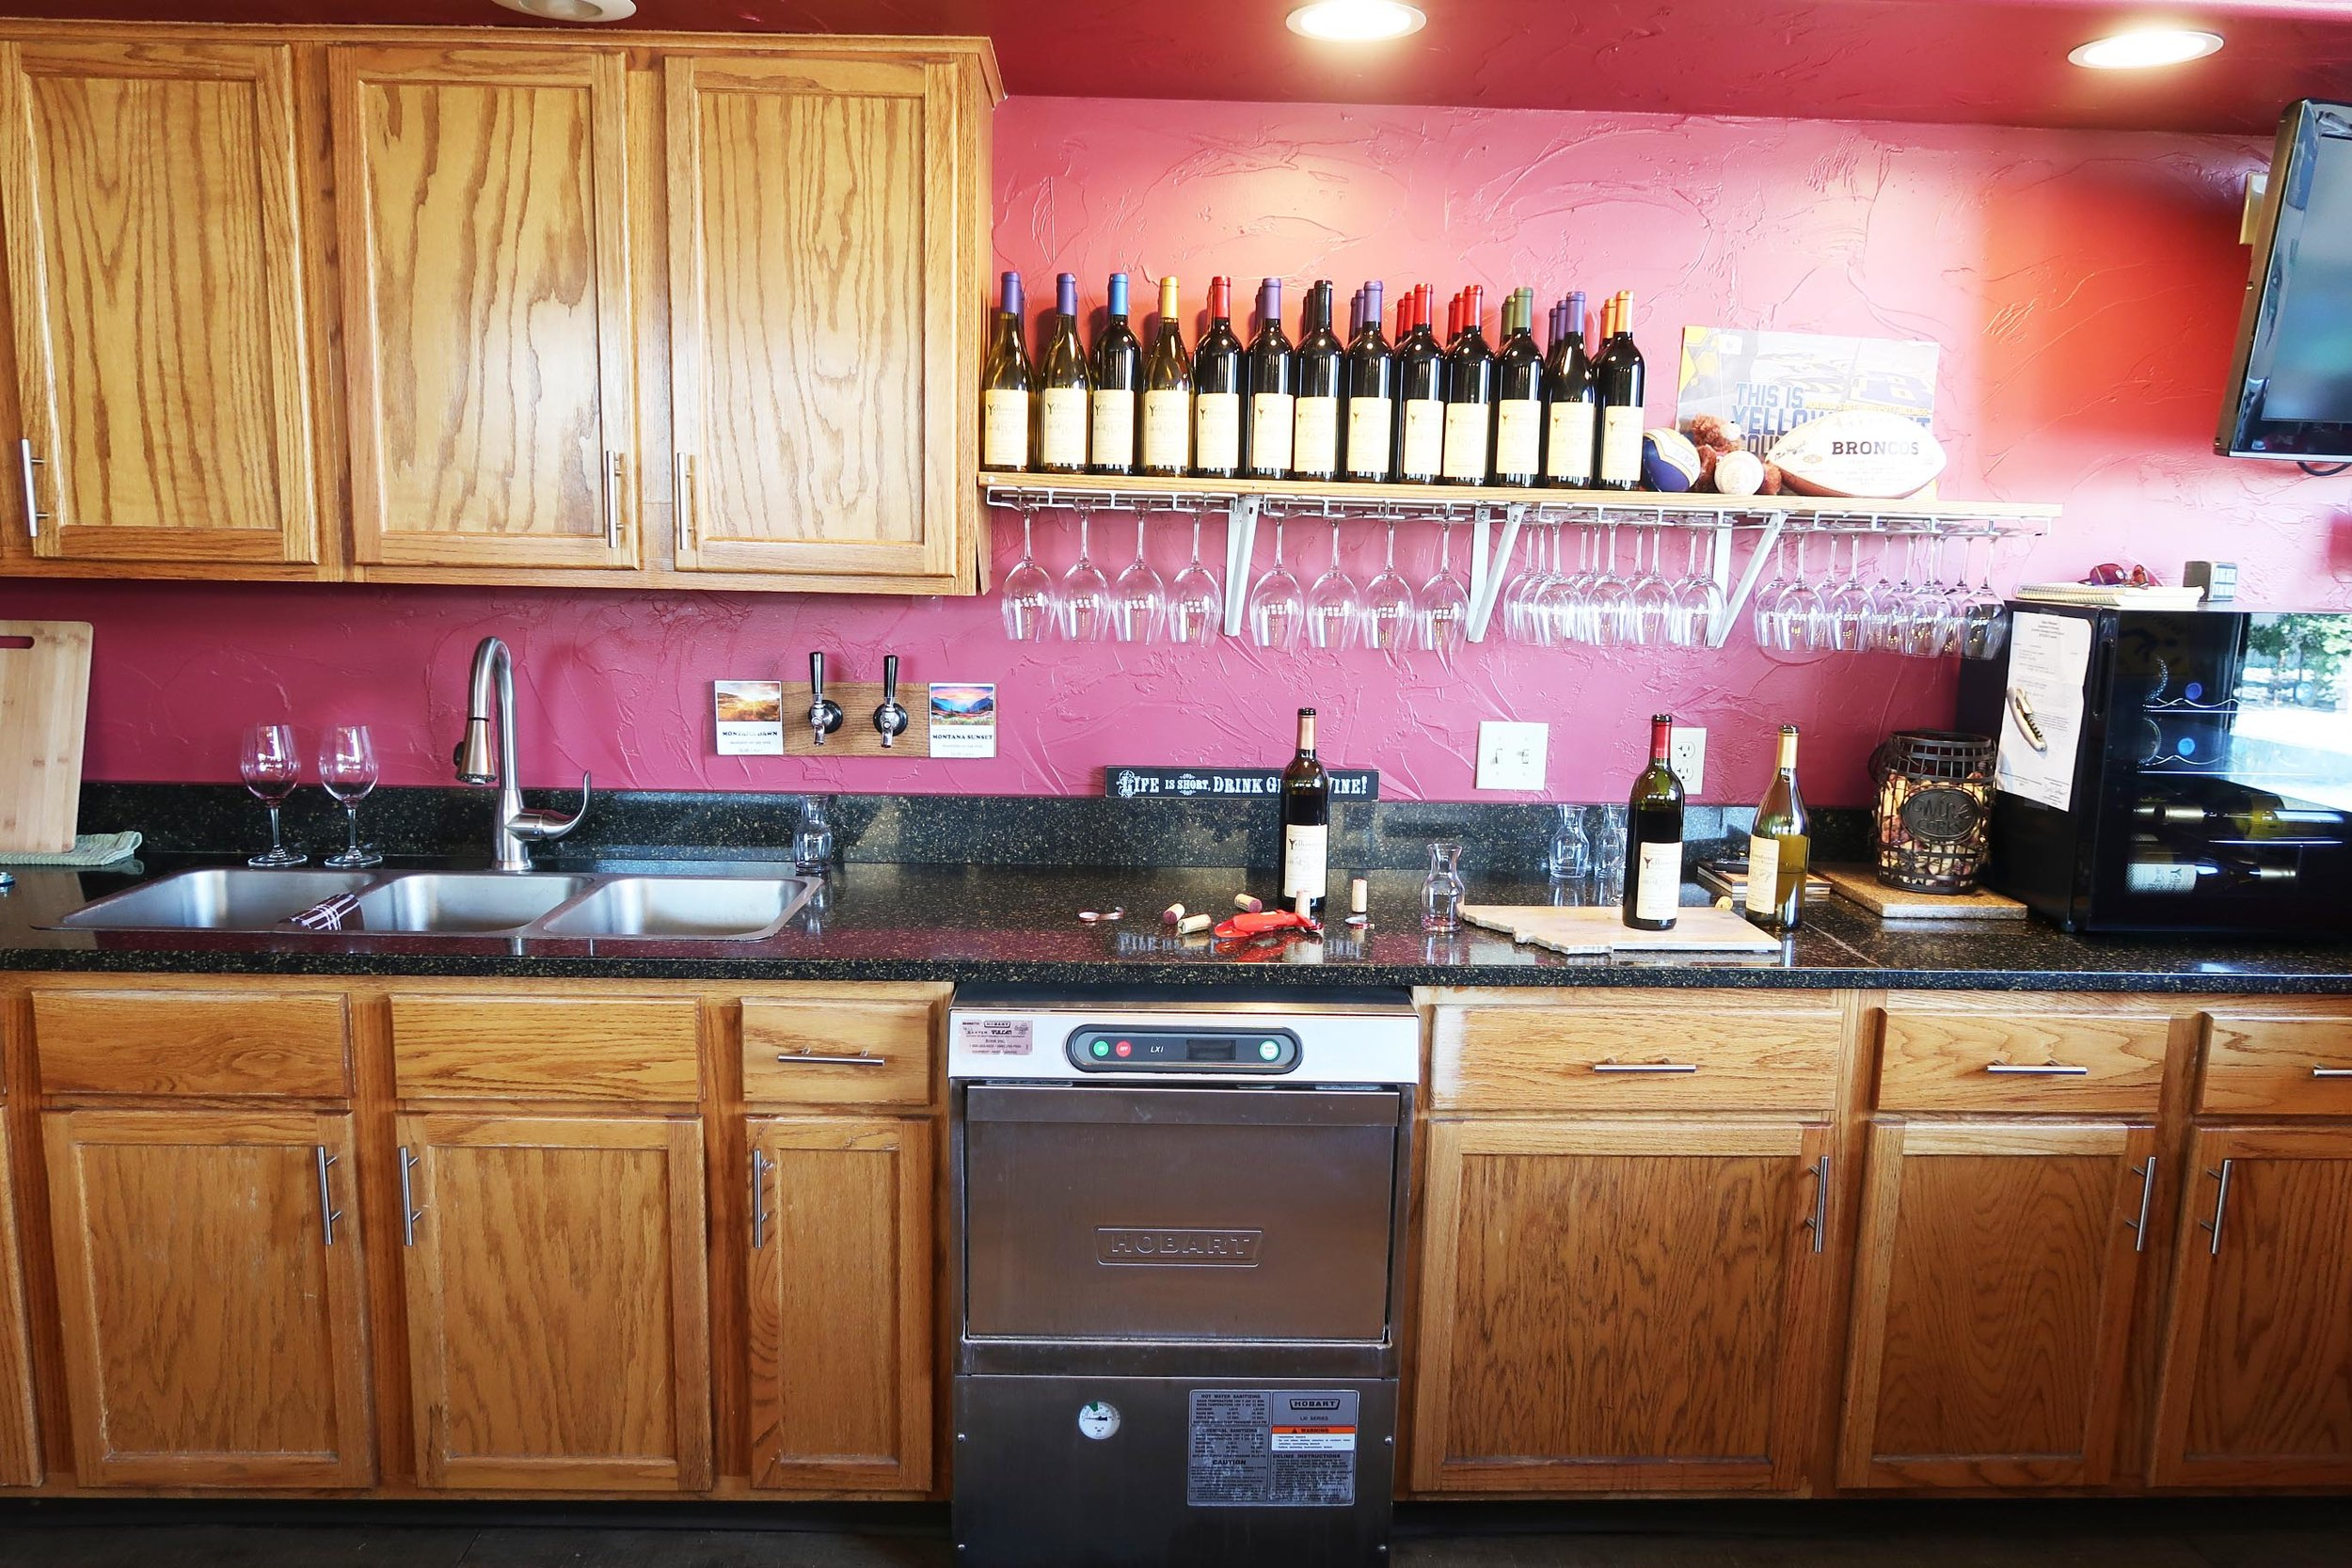 Yellowstone Cellars and Winery in Billings, Montana. The most adorable winery with great wine, food, music, and it's family friendly! A must visit in Billings, MT.